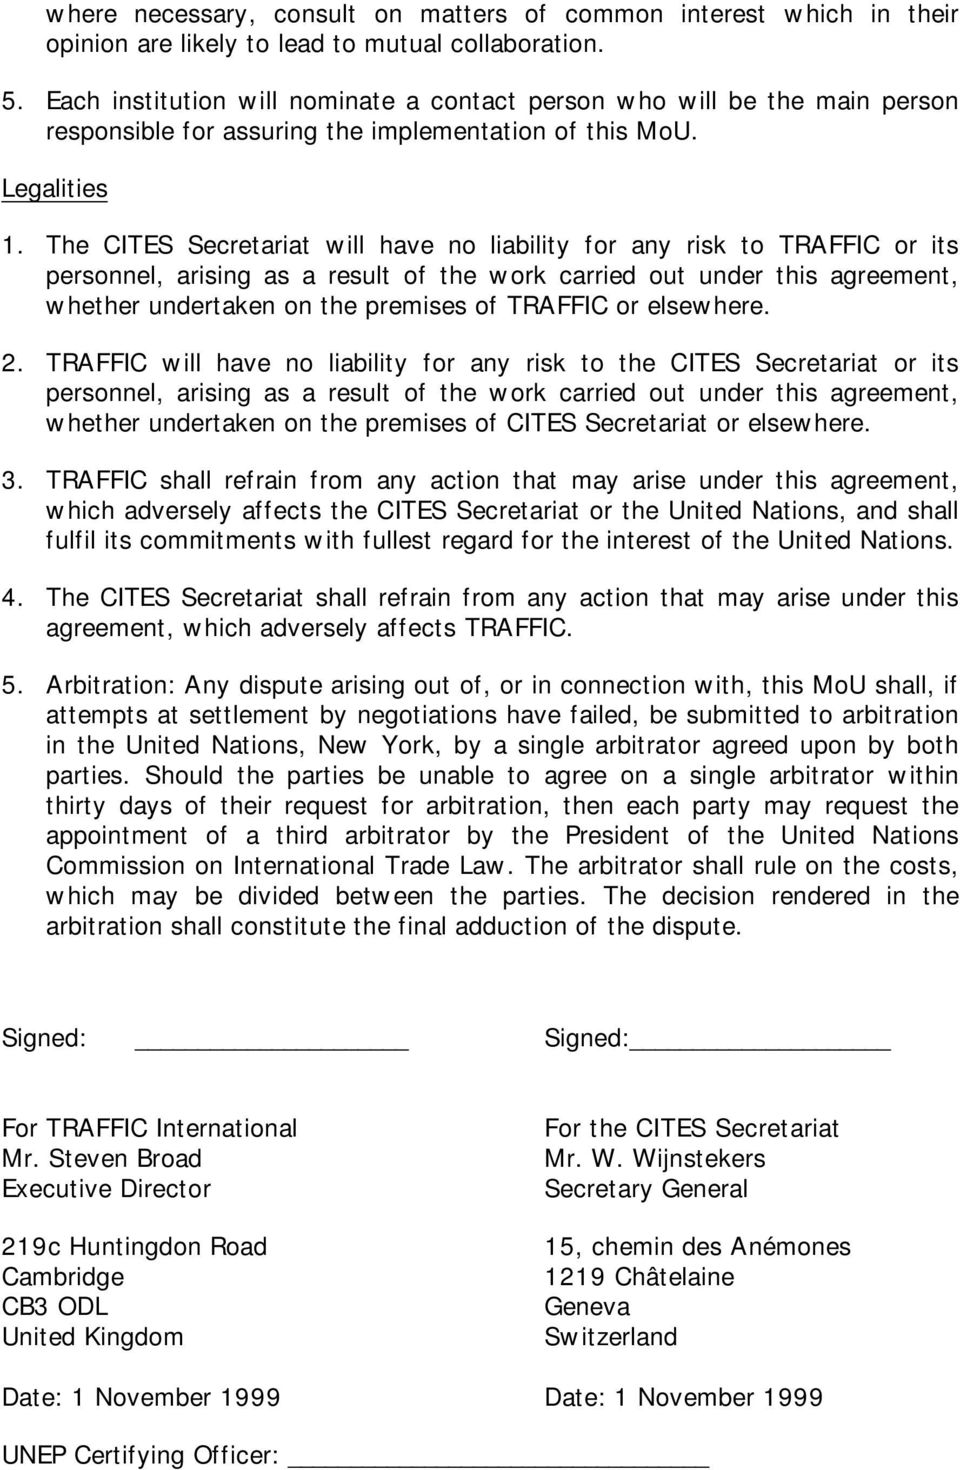 The CITES Secretariat will have no liability for any risk to TRAFFIC or its personnel, arising as a result of the work carried out under this agreement, whether undertaken on the premises of TRAFFIC